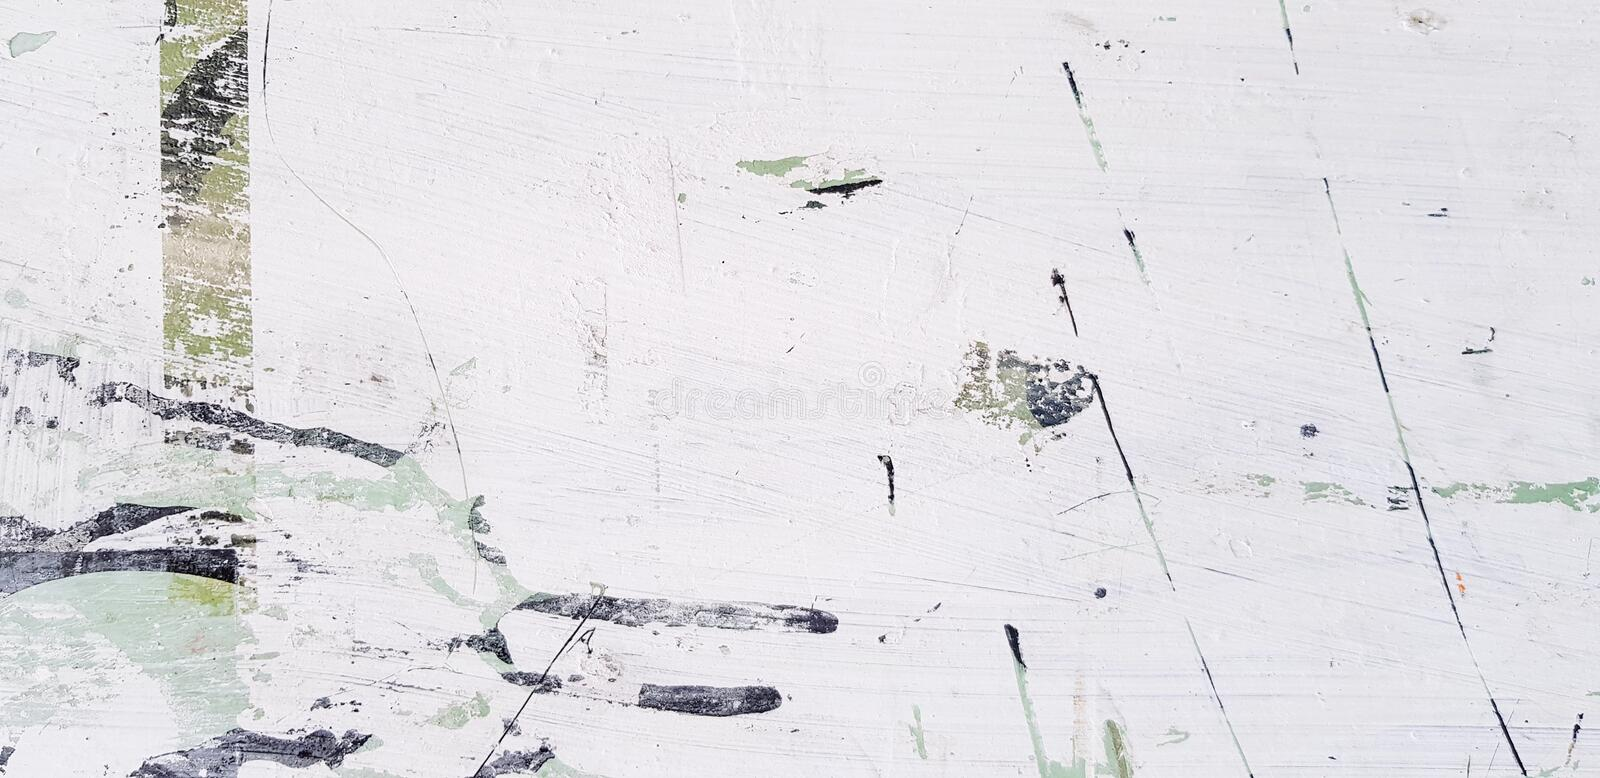 White, Black and Green art abstract scratch or mark on the surface with copy space royalty free stock photo